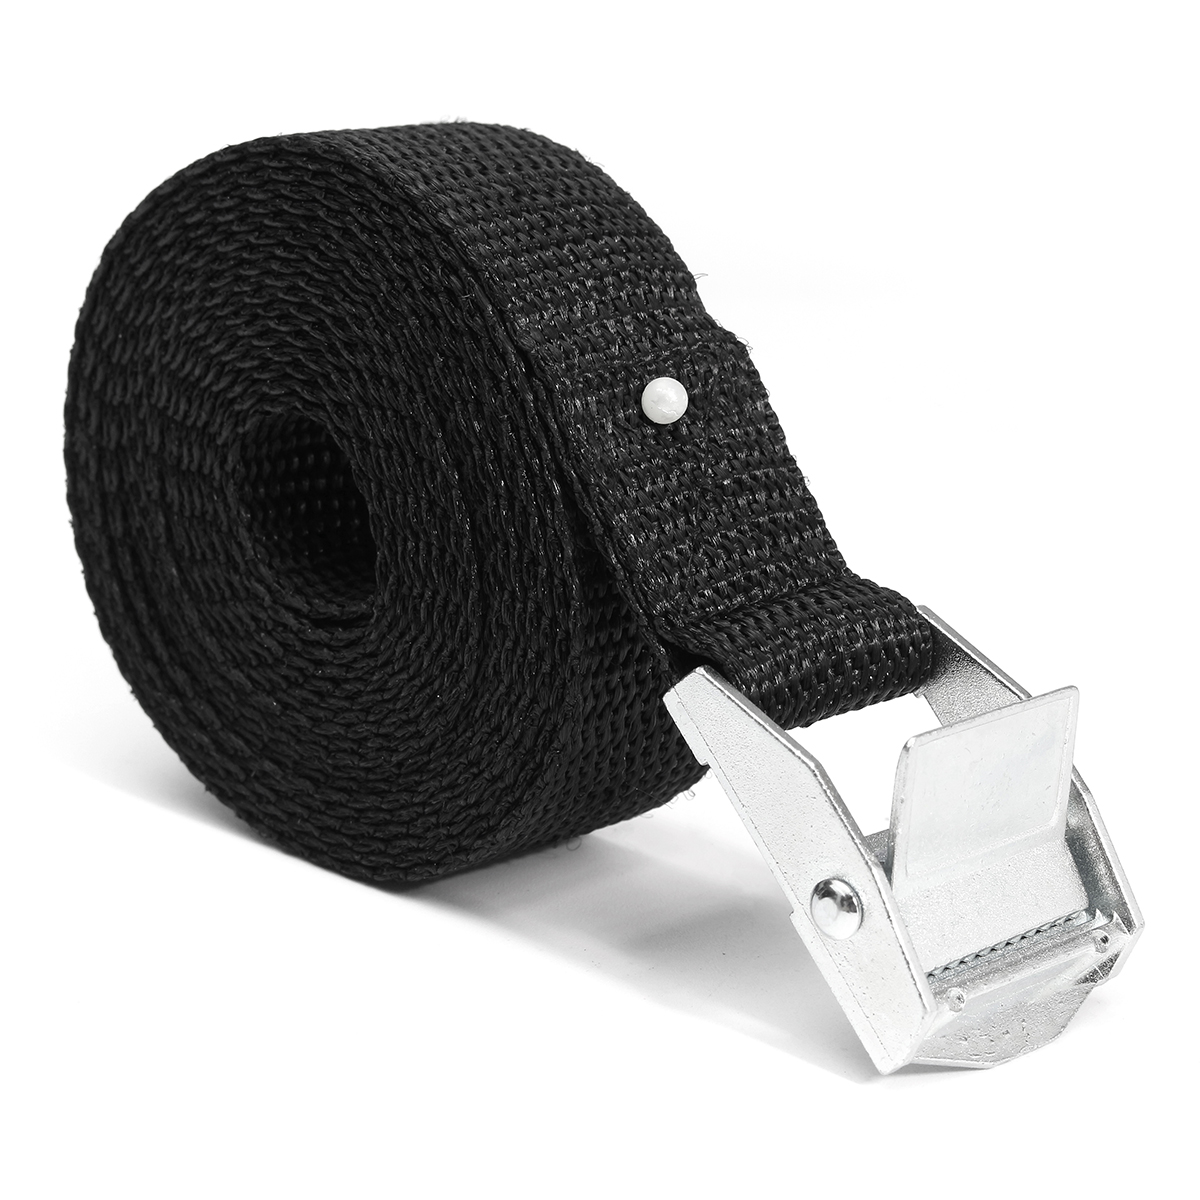 Car Tension Rope Tie Down Strap Strong Ratchet Belt Car Luggage Bag Cargo Lashing Strap Zinc Alloy Zinc Nylon Black